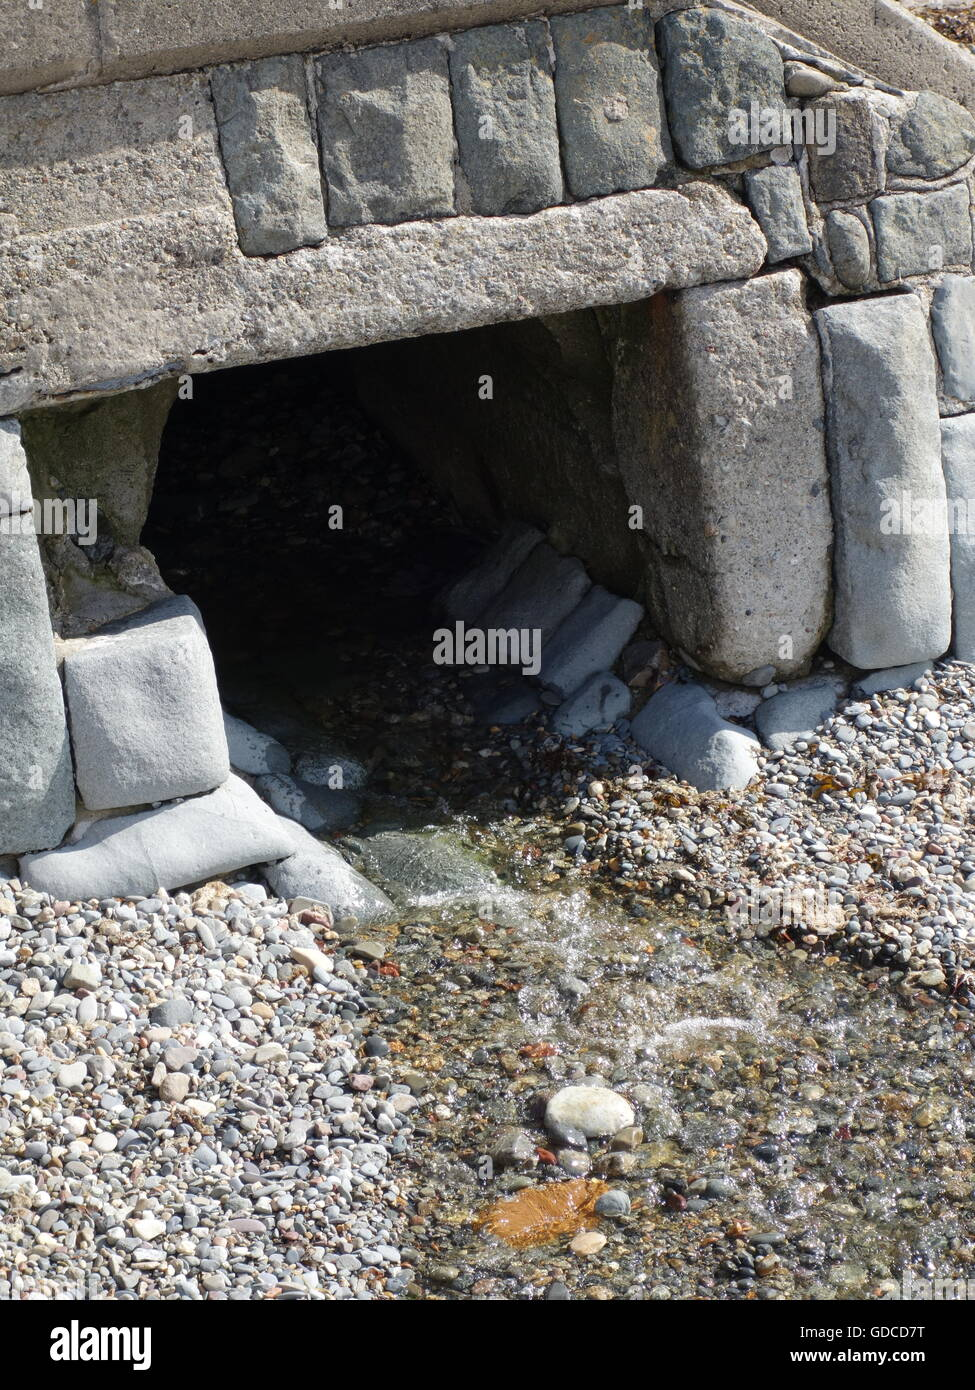 An old drain channel or irrigation pipe on a beach - Stock Image